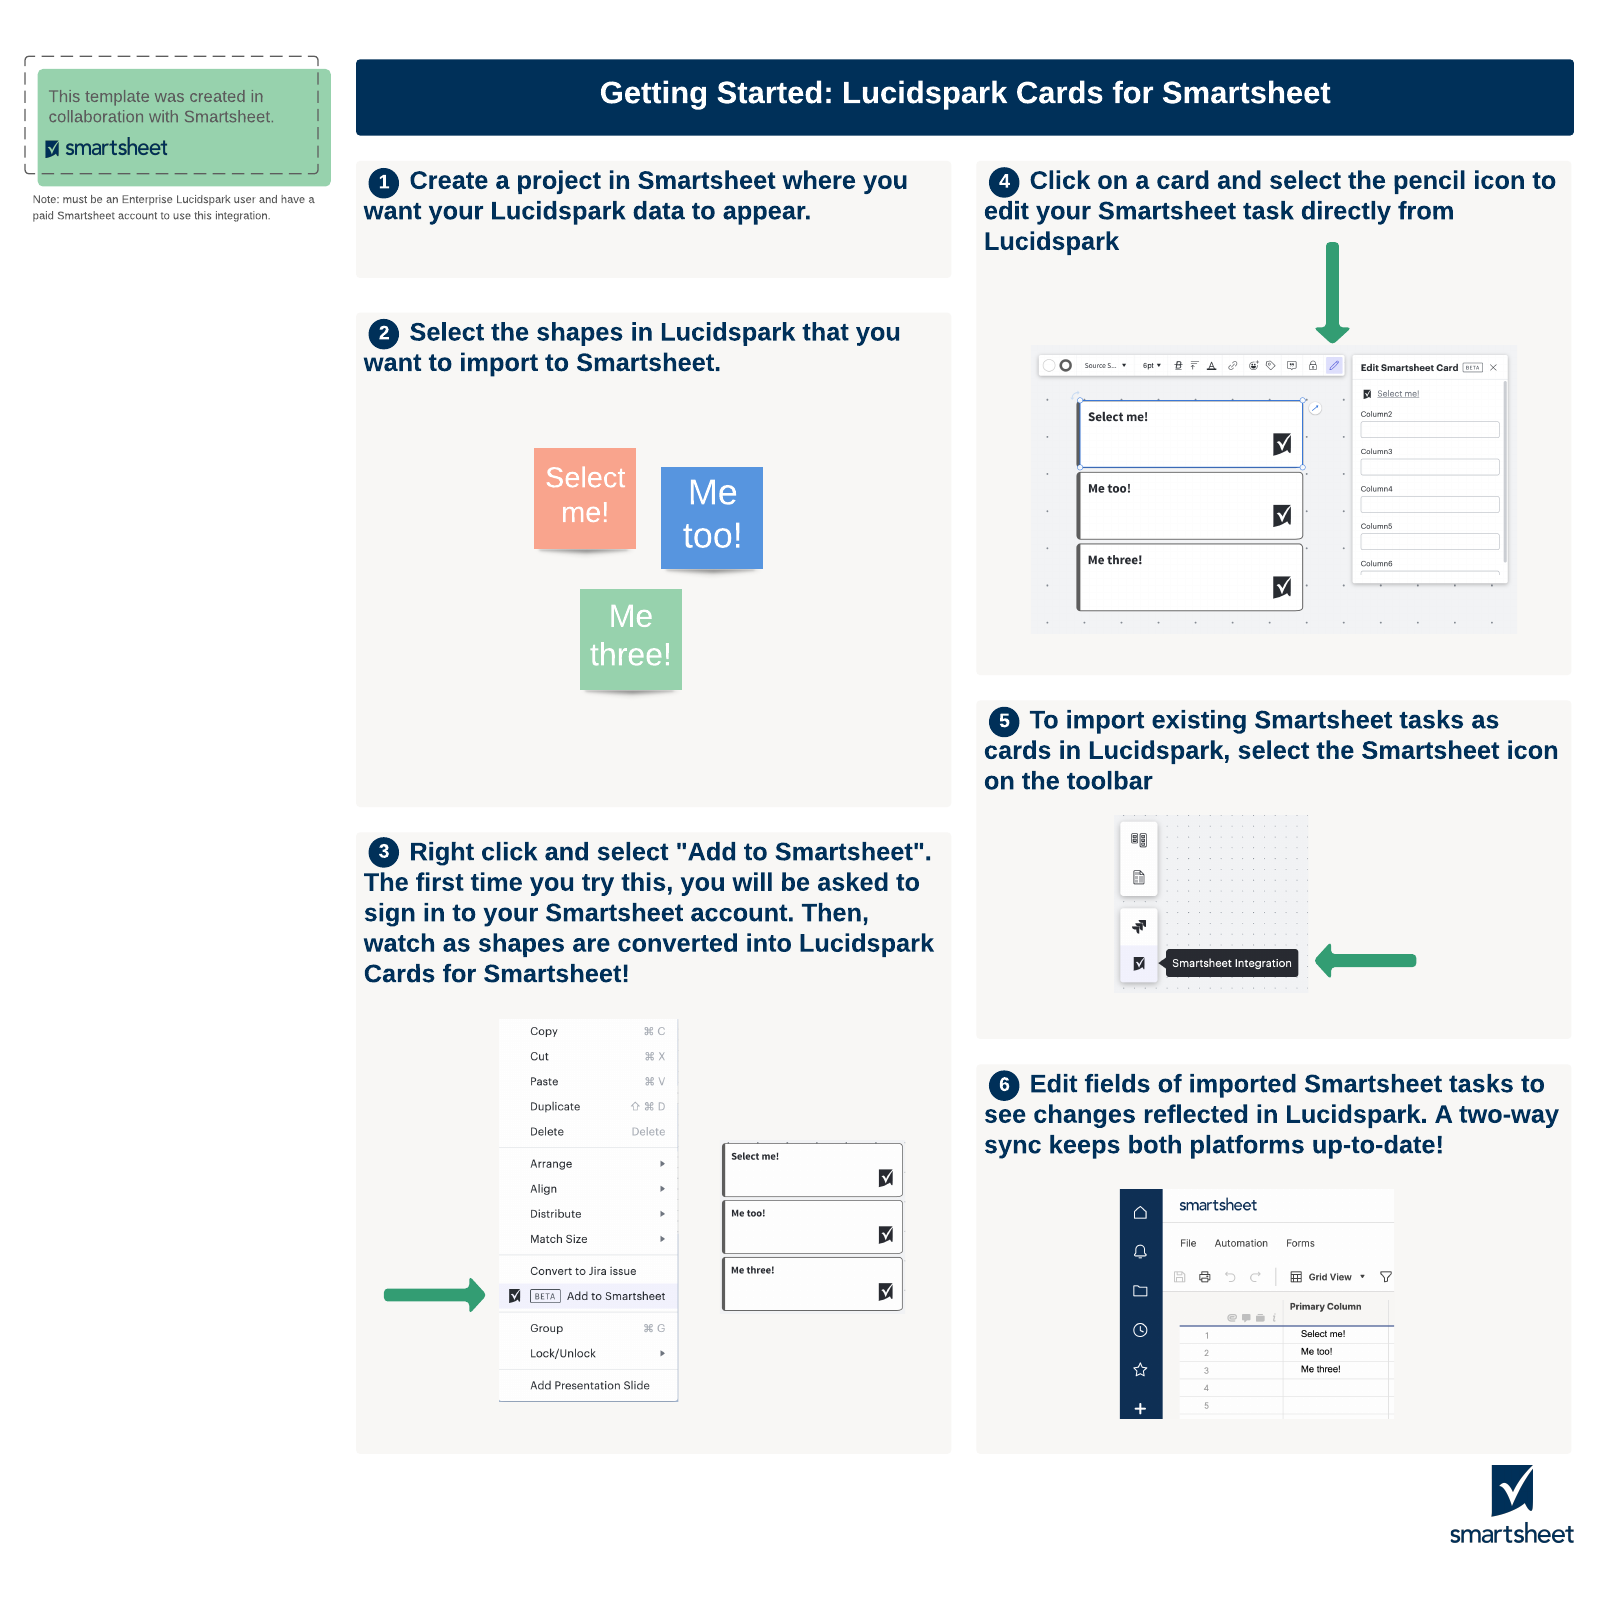 Getting started with Smartsheet integration